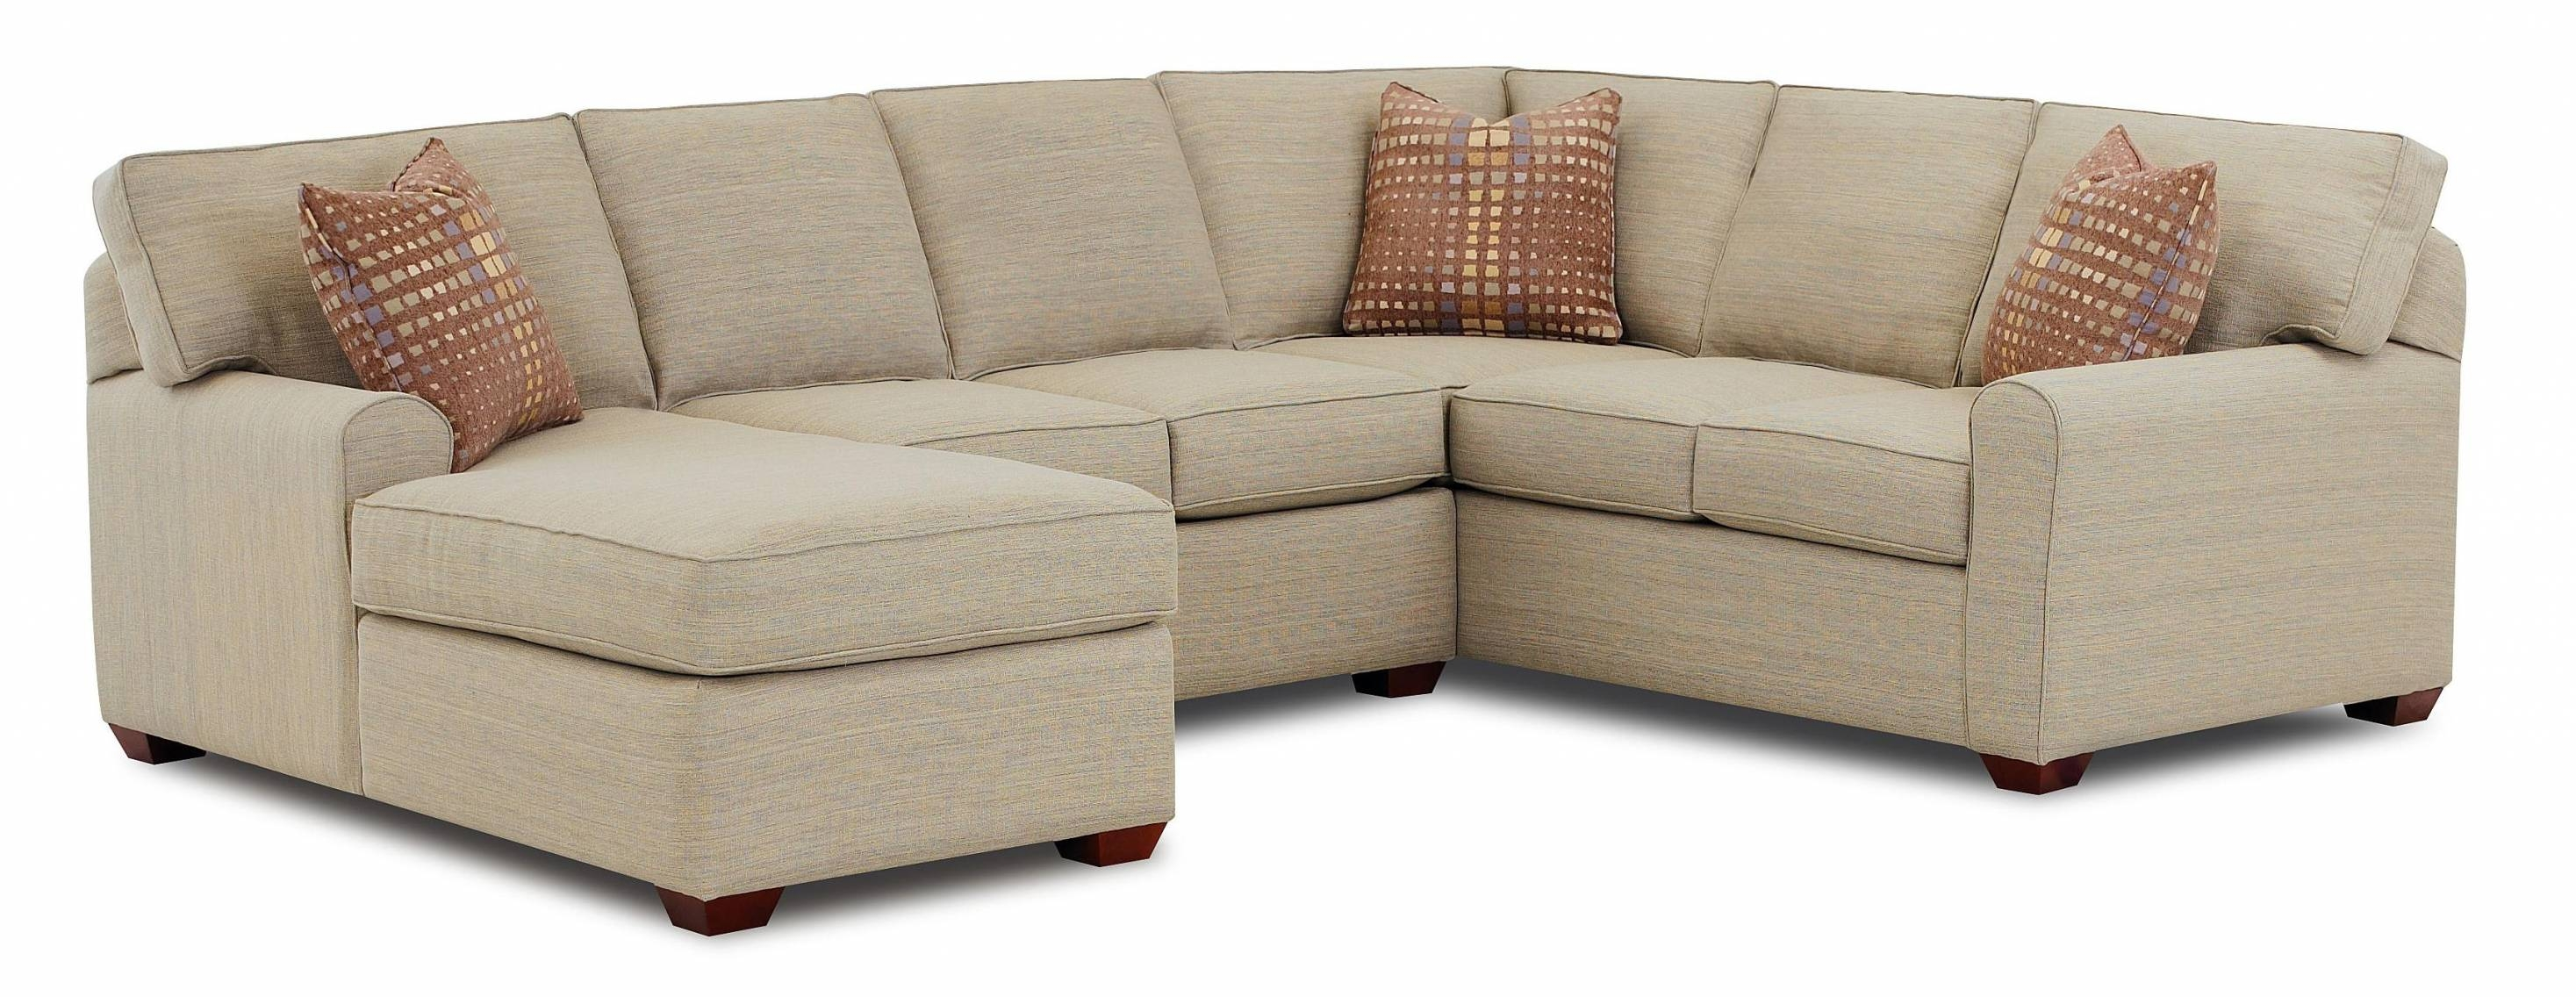 2019 Latest Broyhill Sectional Sofa